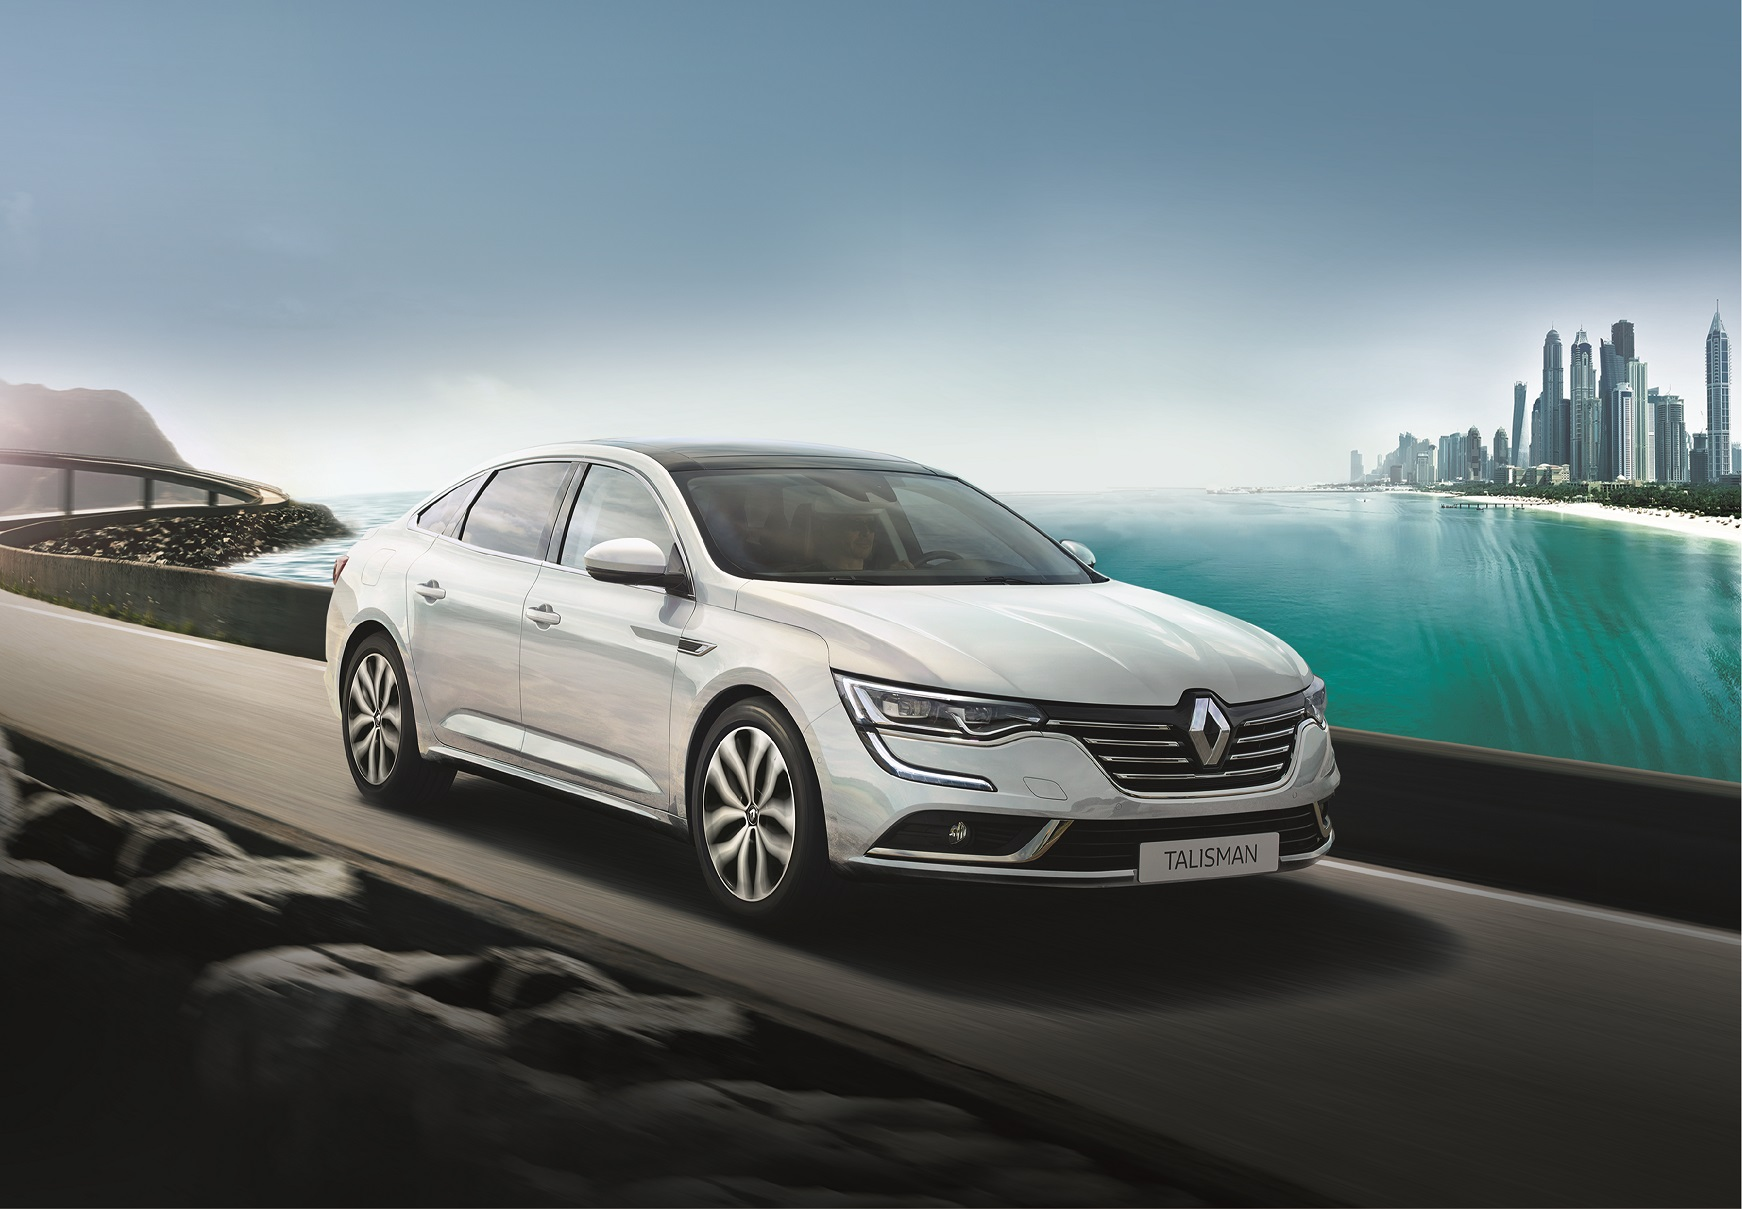 Arabian Automobiles Company Launches All-New 2017 Renault Talisman